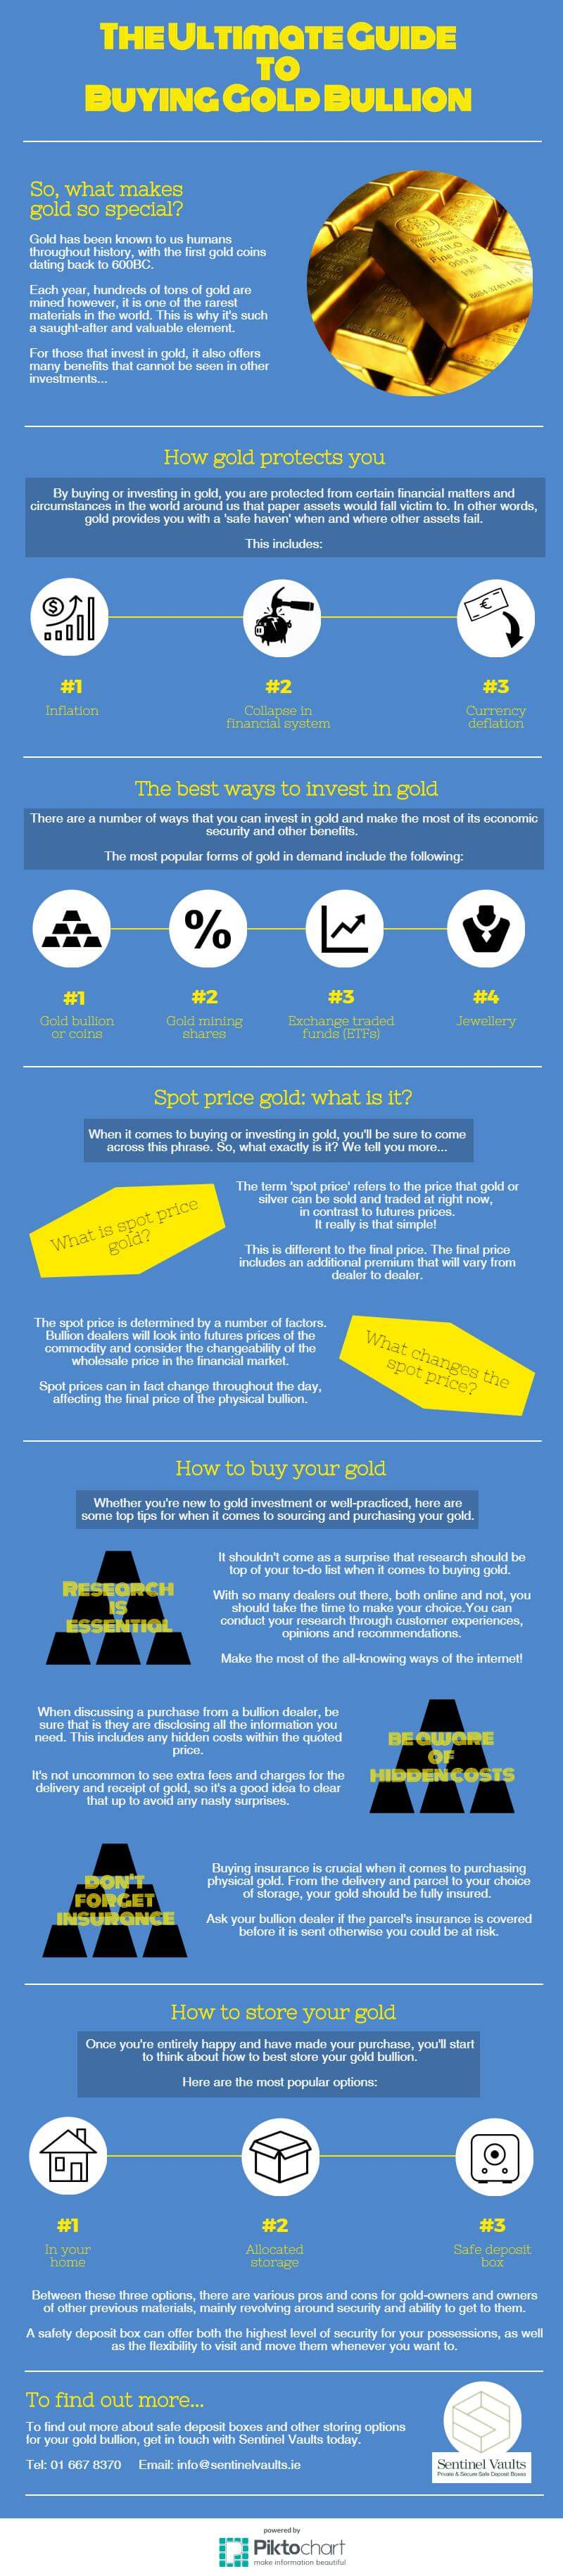 Ultimate guide to buying gold bullion